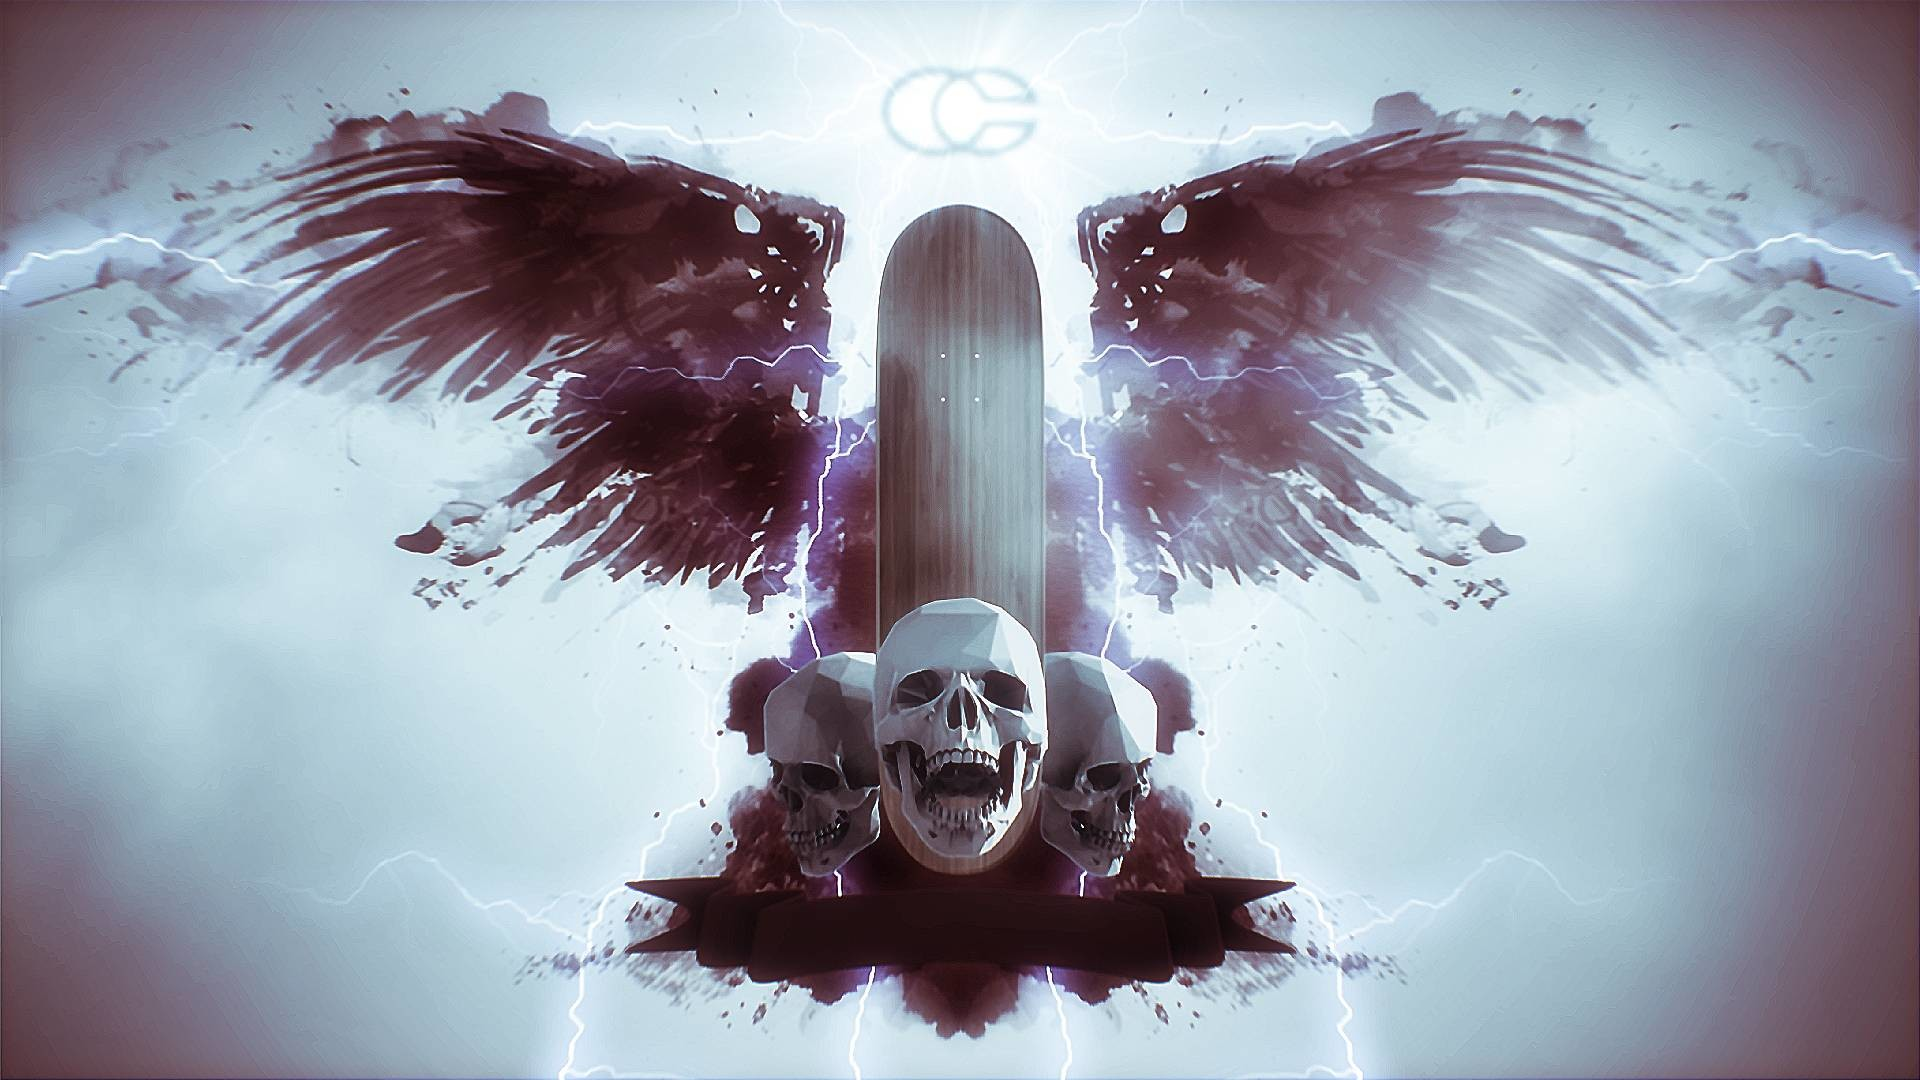 Cool Skateboarding Wallpapers 63 Images